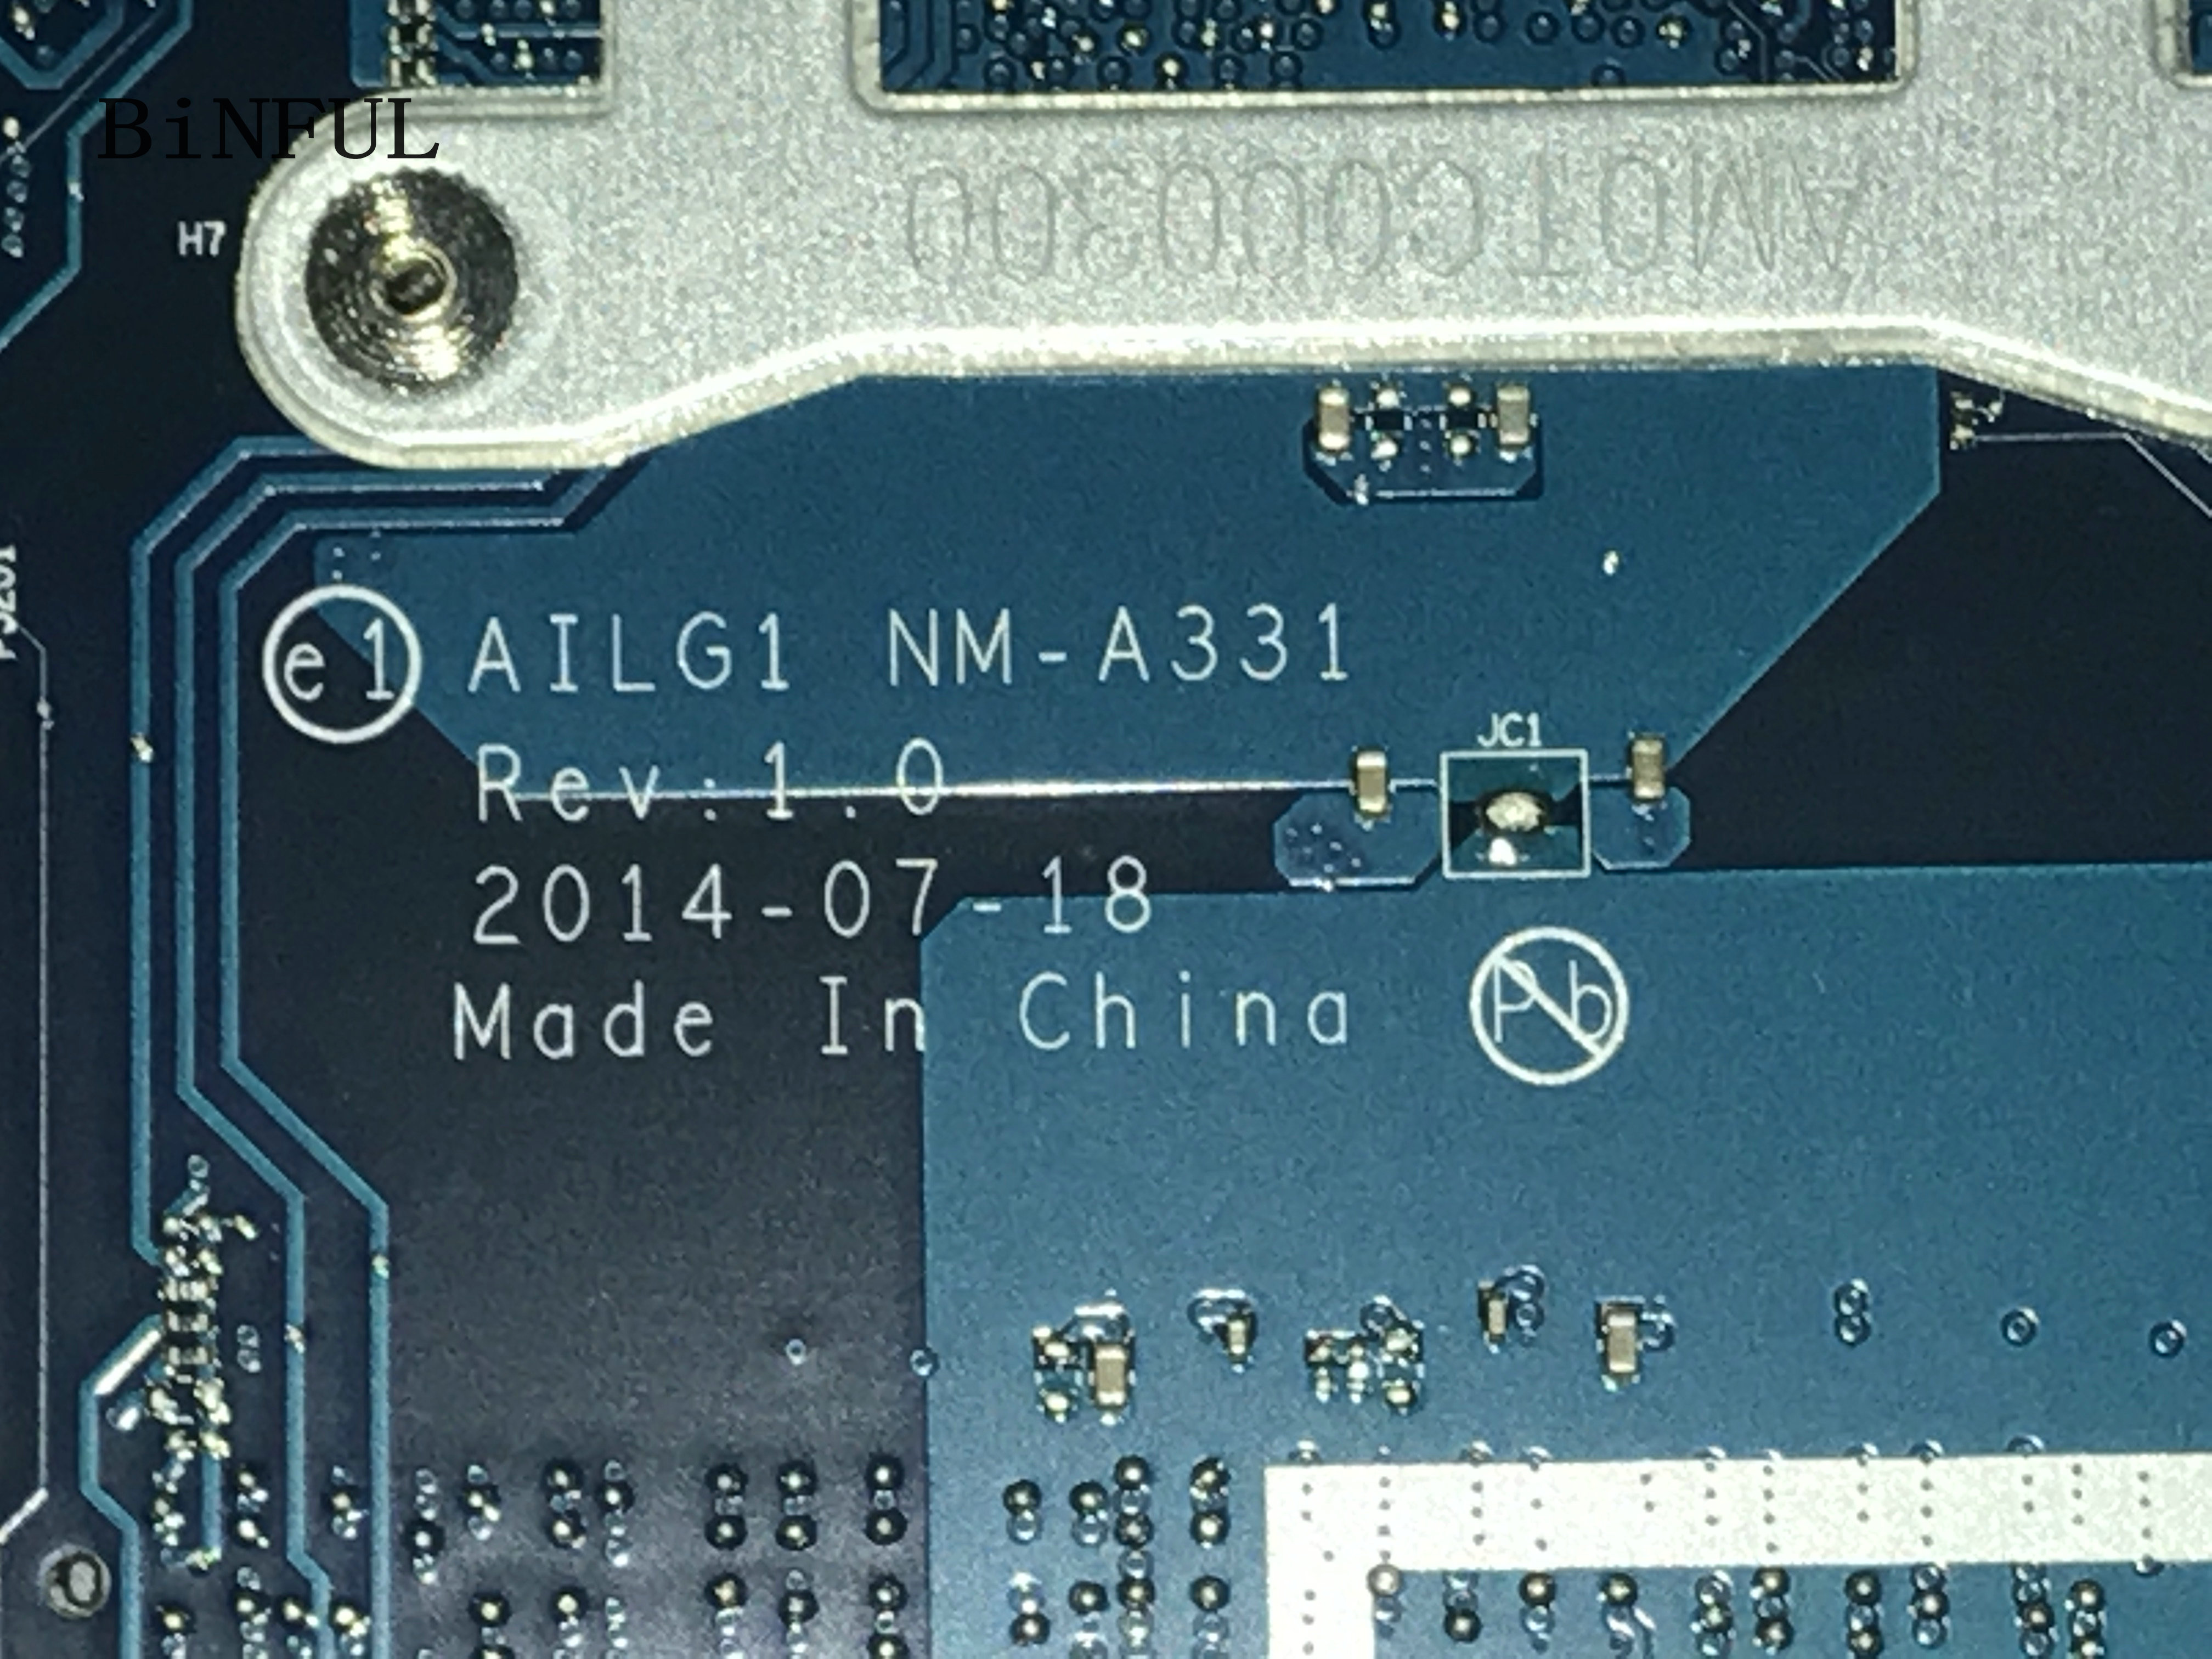 BiNFUL STOCK 100% NEW  AILG1 NM-A331  FOR LENOVO  G70-80 / G70-70 LAPTOP MOTHERBOARD ONBOARD PROCESSOR 3805UBiNFUL STOCK 100% NEW  AILG1 NM-A331  FOR LENOVO  G70-80 / G70-70 LAPTOP MOTHERBOARD ONBOARD PROCESSOR 3805U